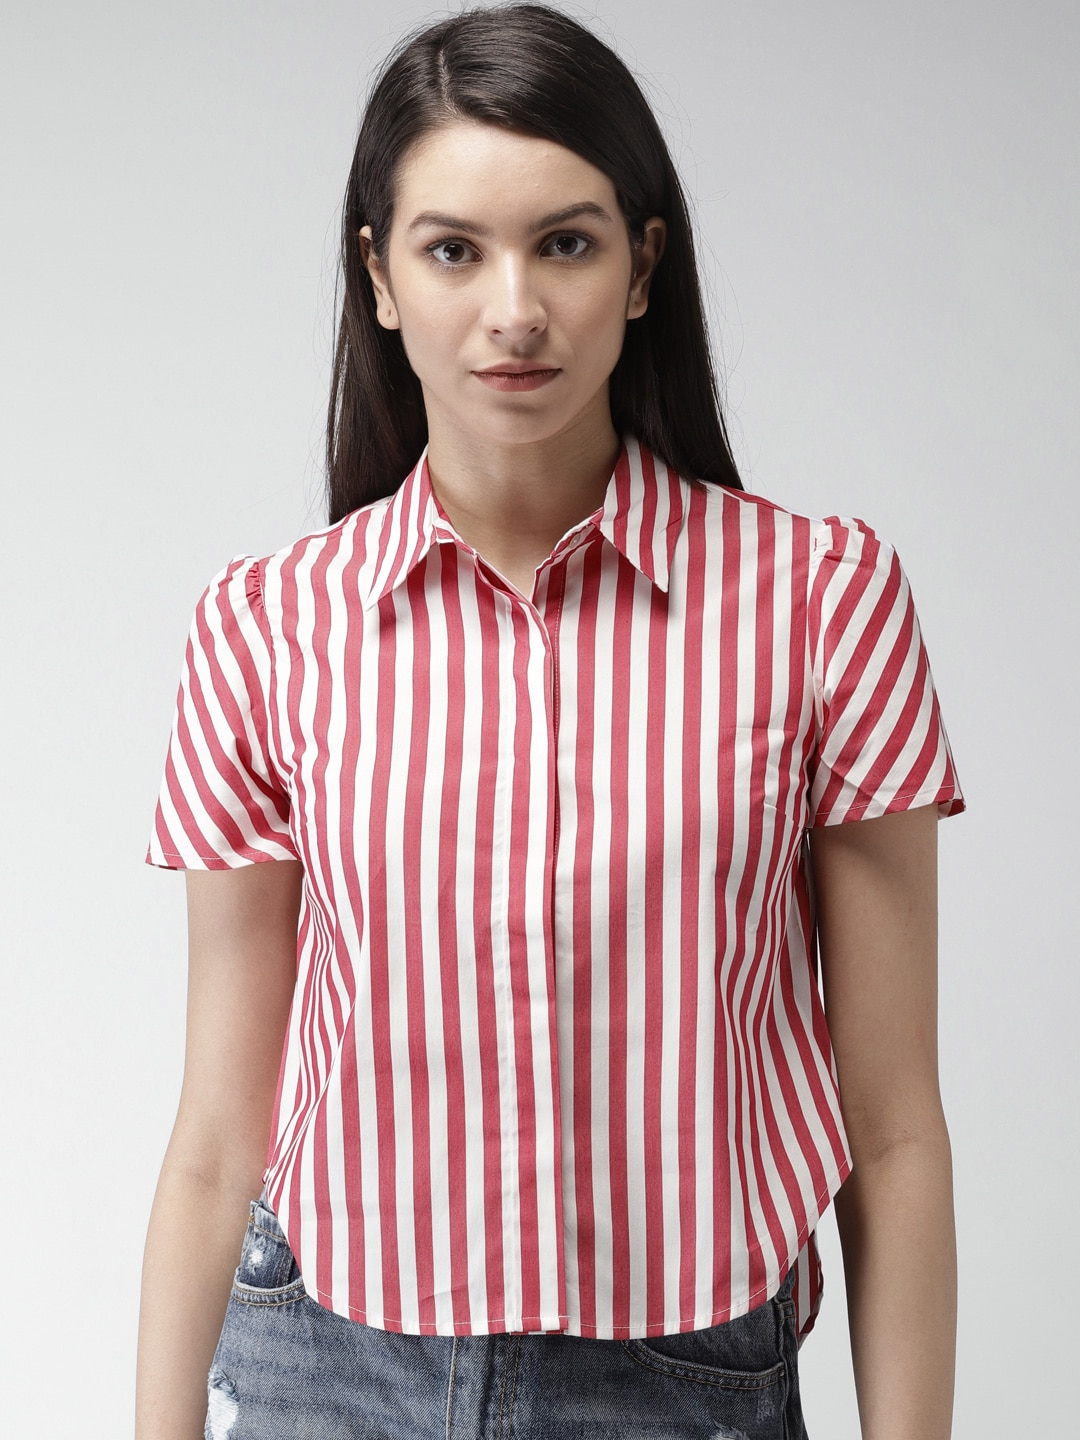 c2f6bdb28c Formal Shirts For Womens Online India – EDGE Engineering and ...